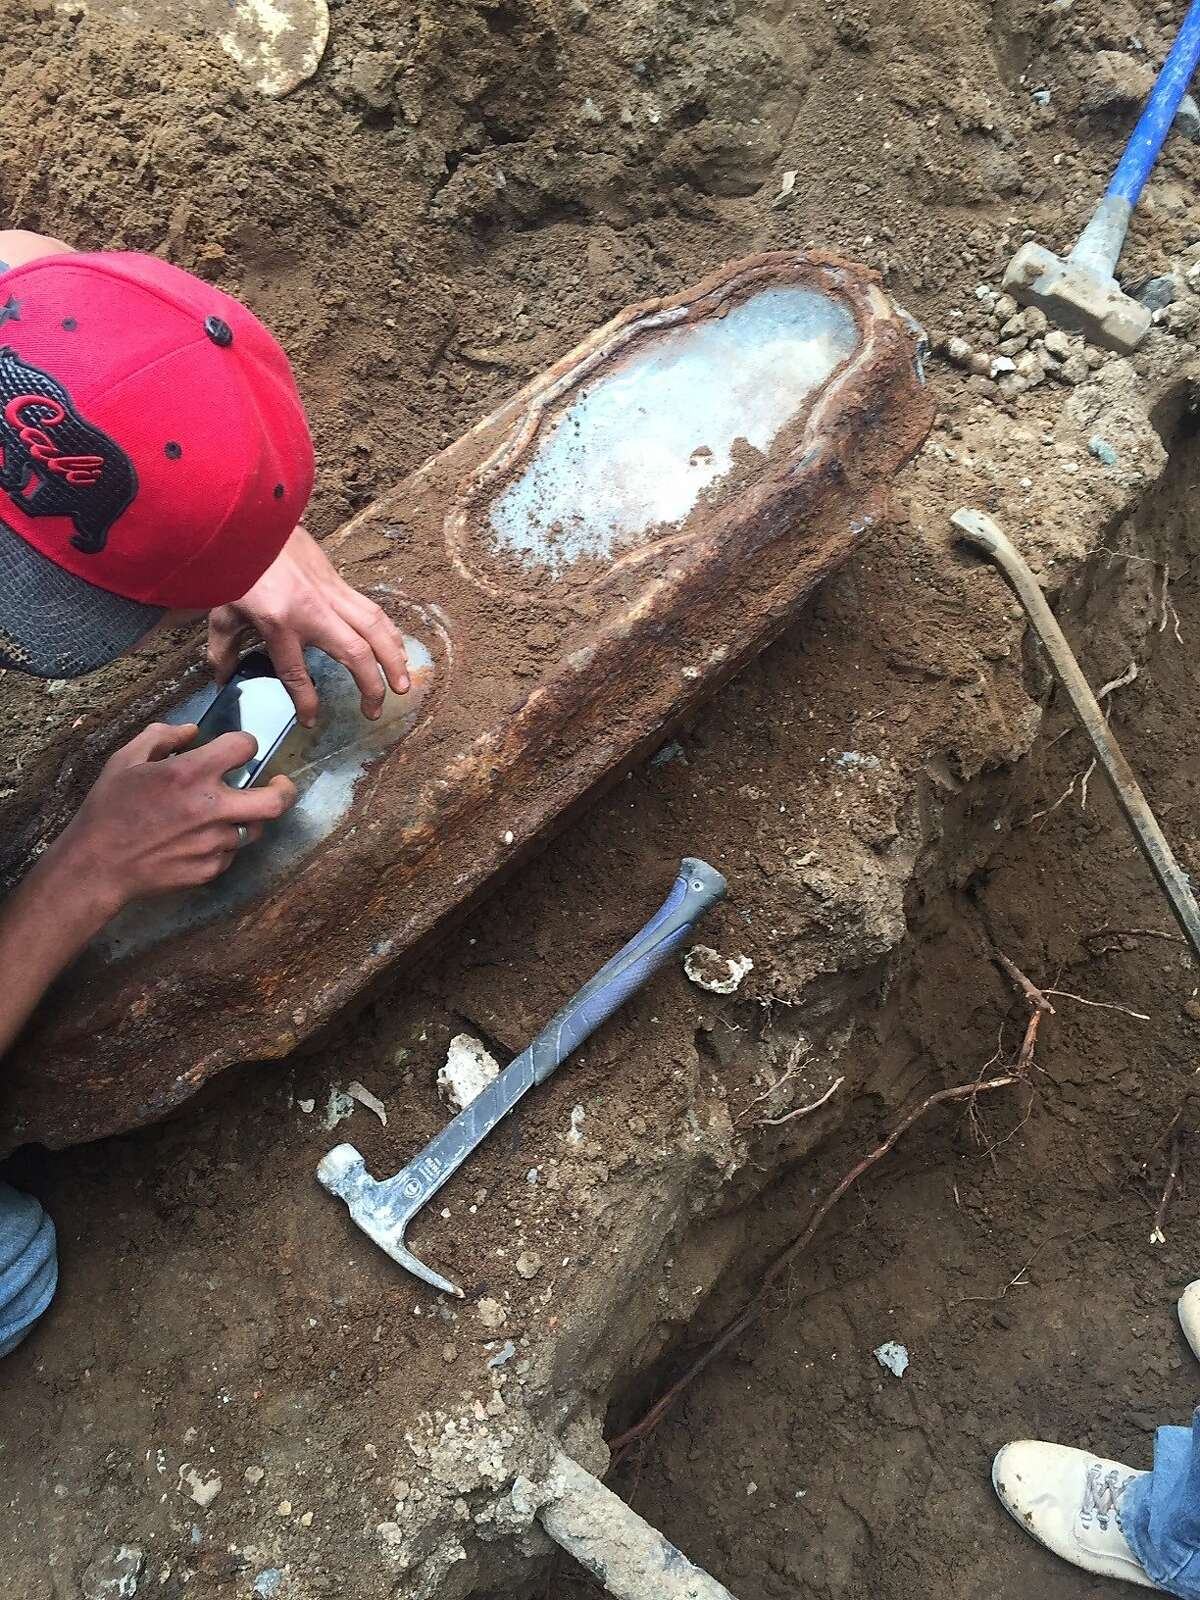 The coffin of a little girl, found buried beneath a San Francisco home.